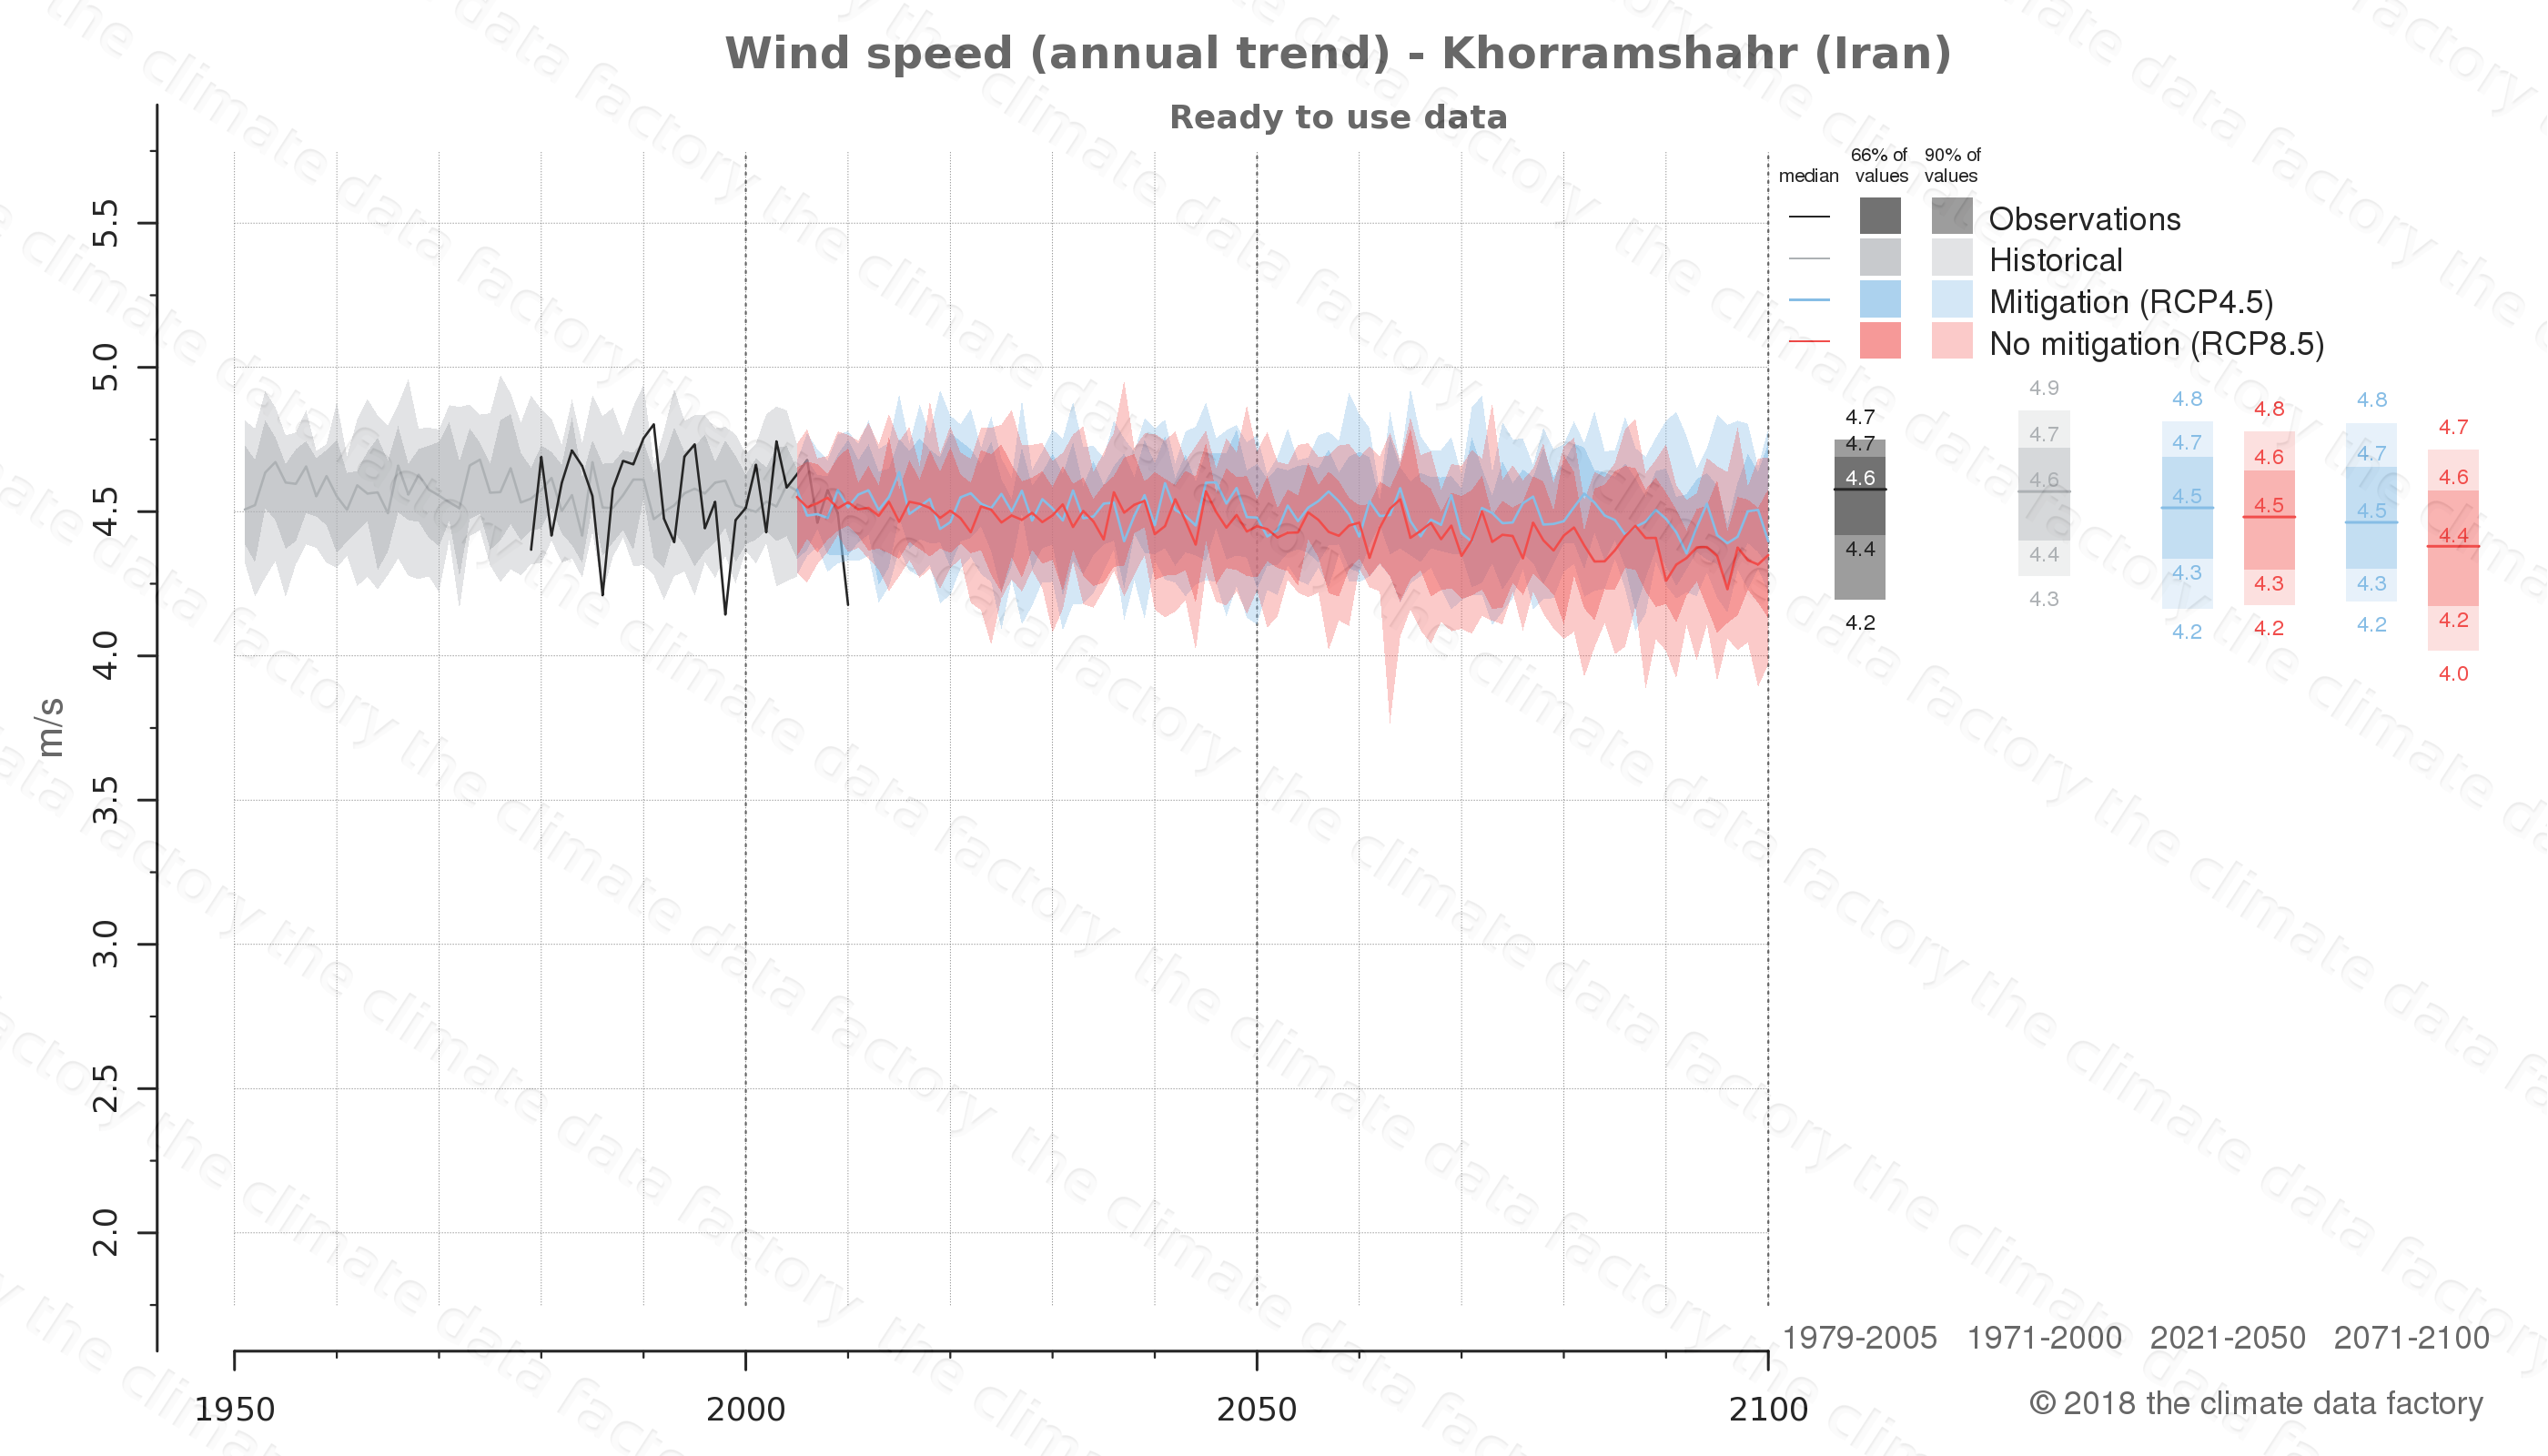 climate change data policy adaptation climate graph city data wind-speed khorramshahr iran